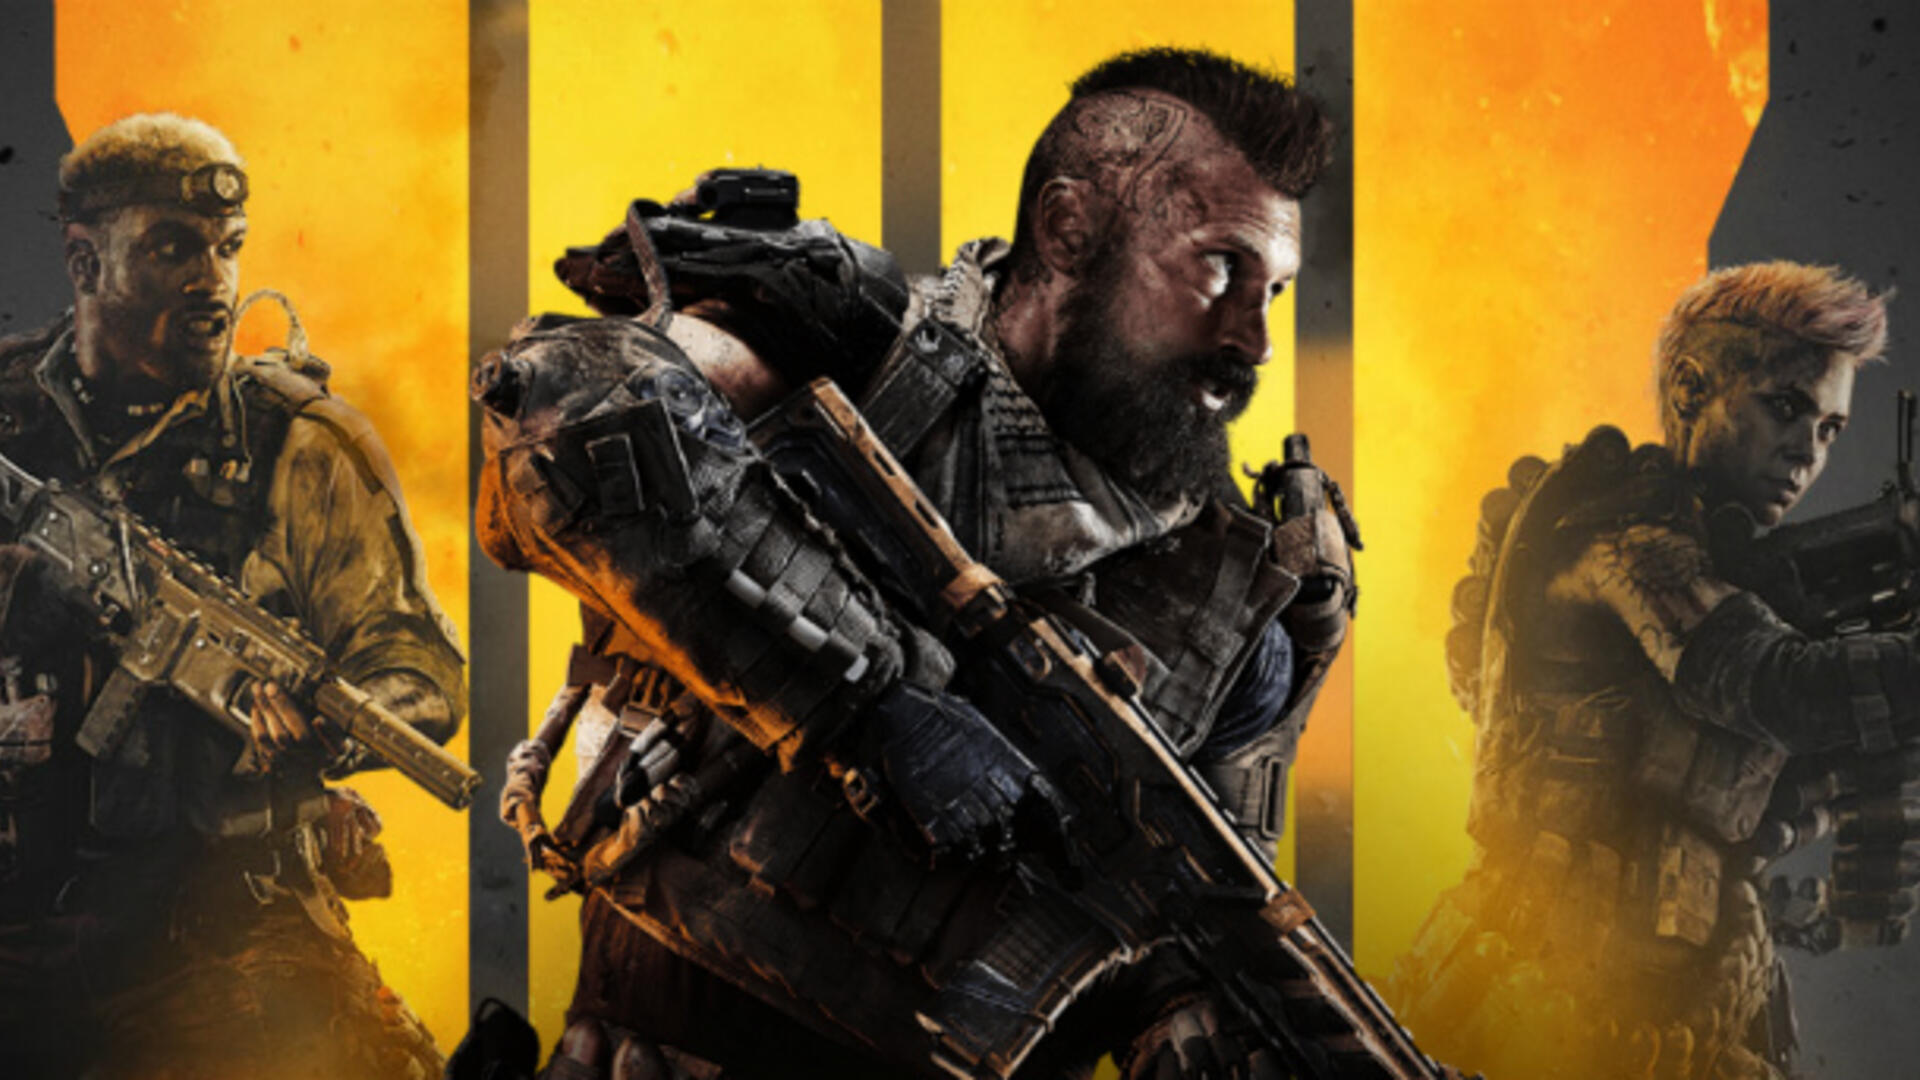 Call of Duty Black Ops 4 Down to £34/$38 - Best Black Friday Price for CoD Black Ops 4 on PS4, Xbox One